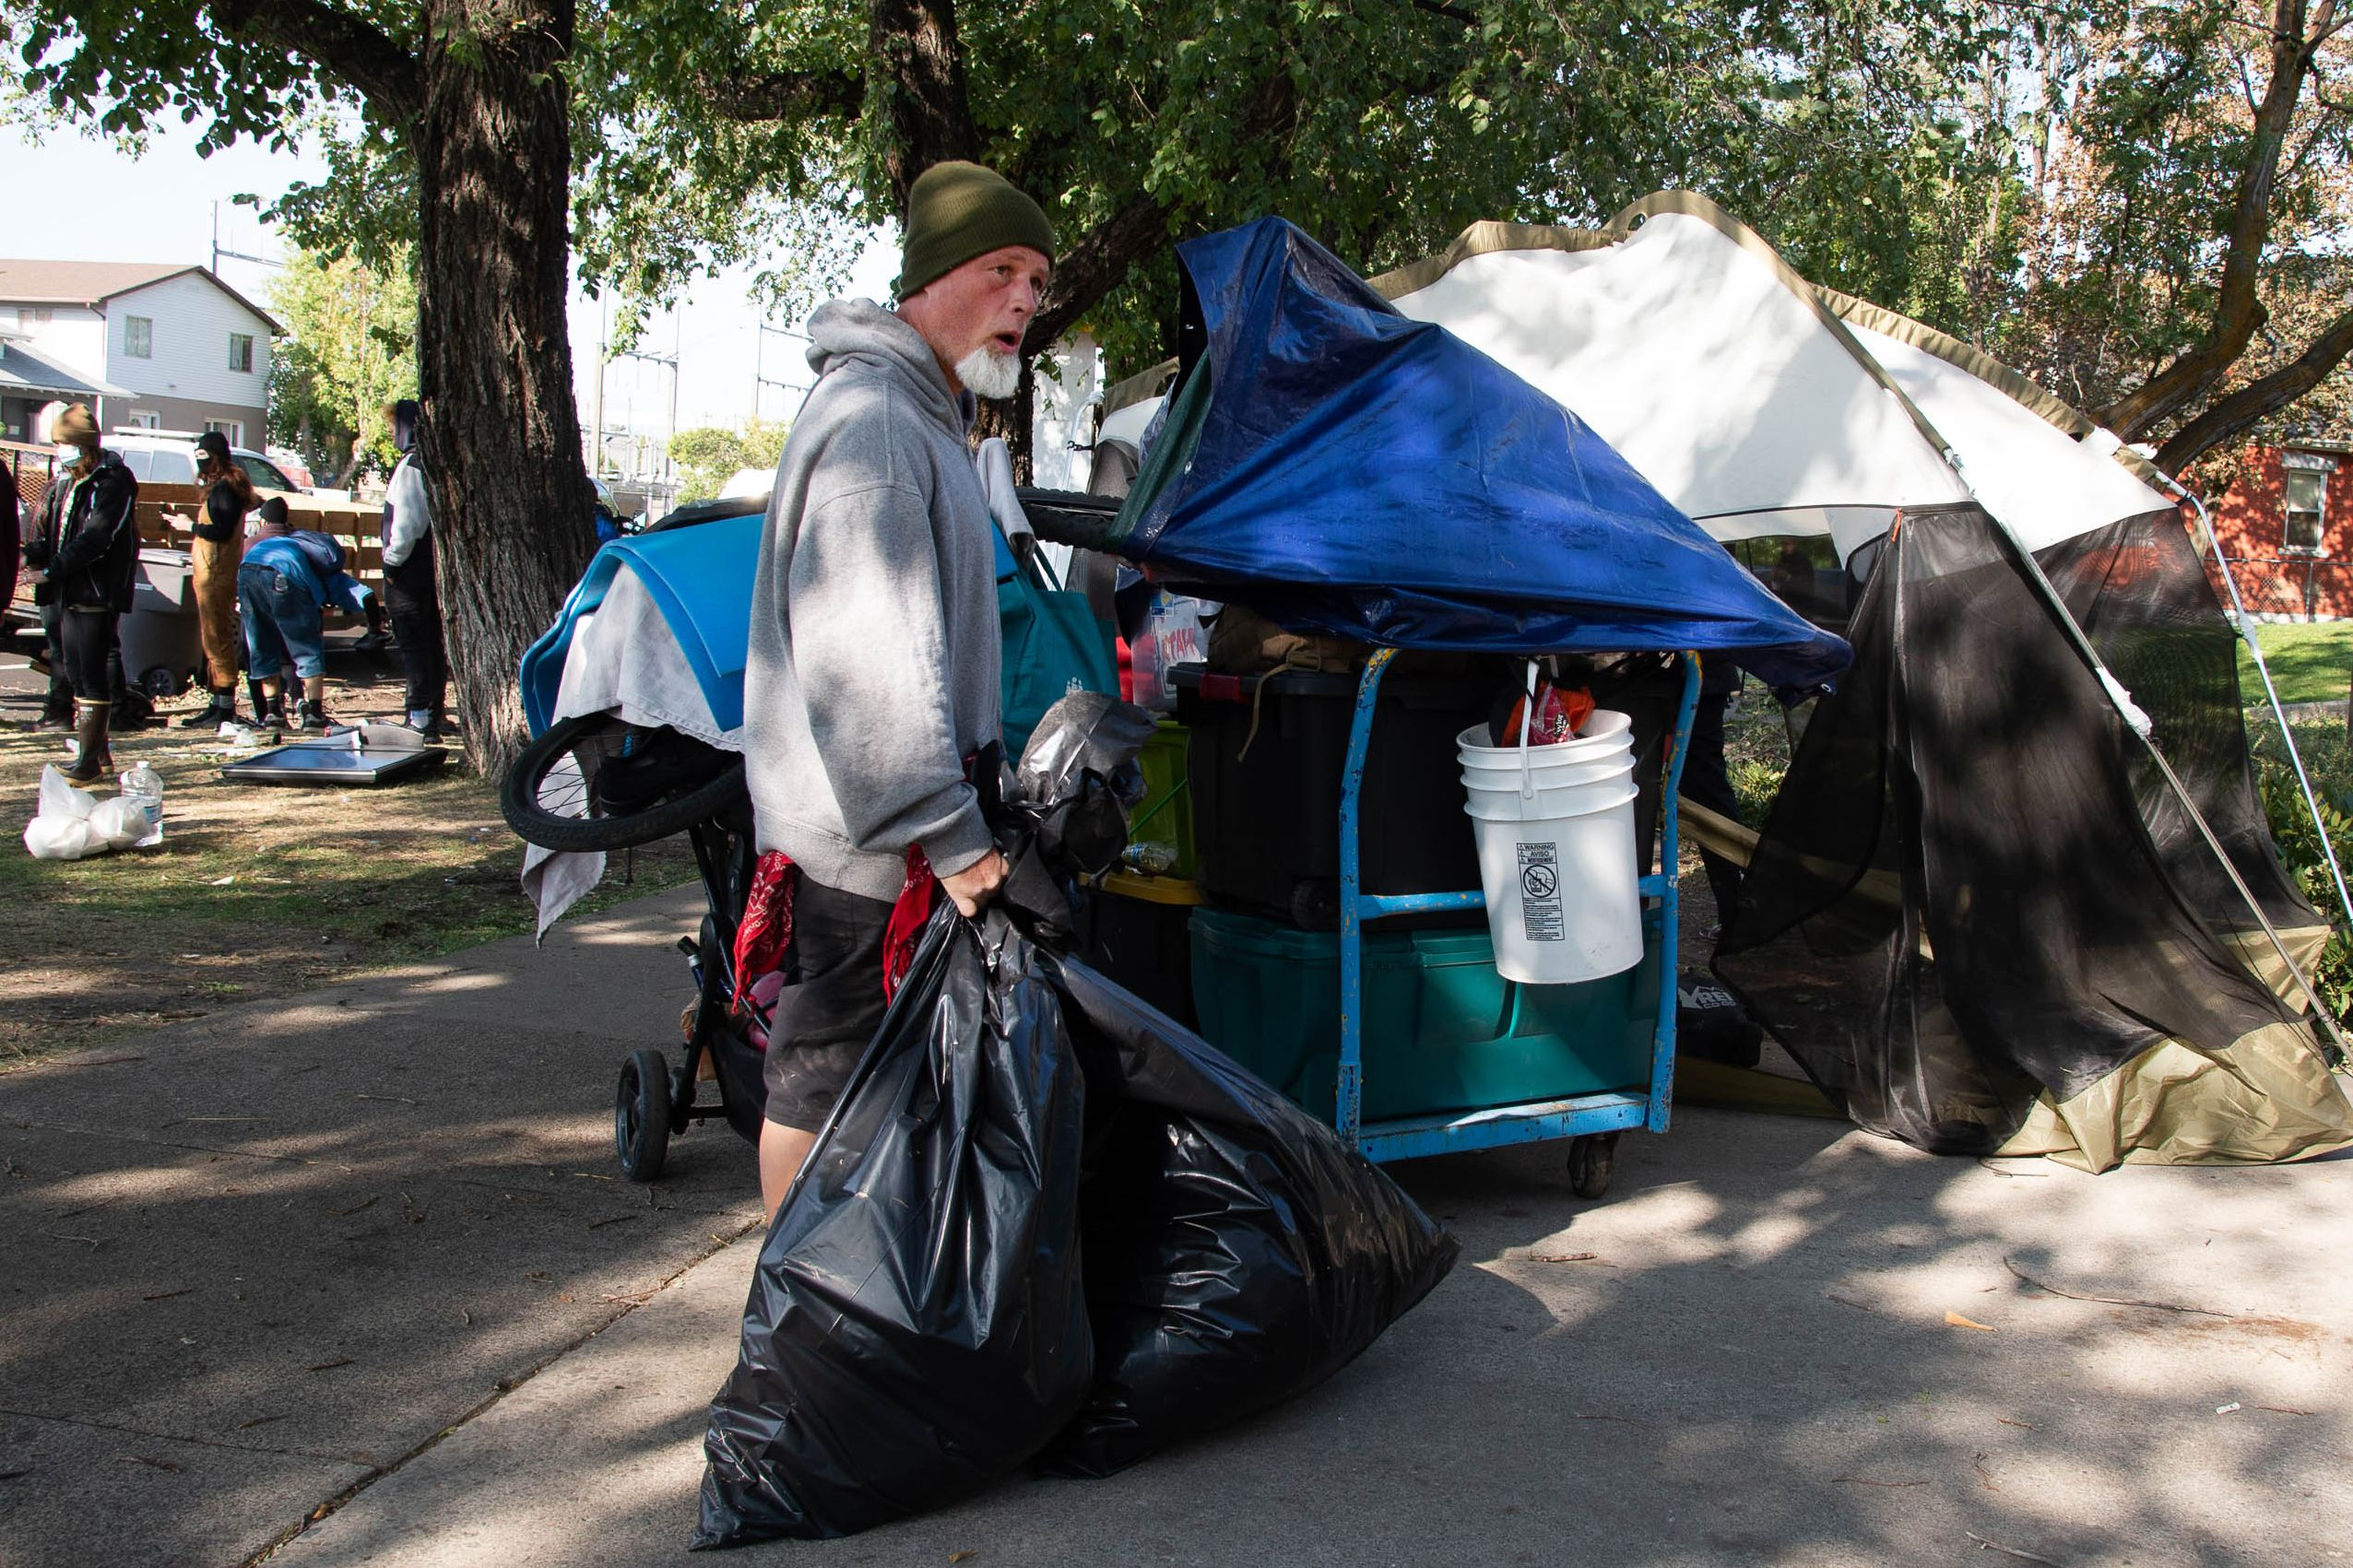 (Francisco Kjolseth  |  The Salt Lake Tribune) Richard Ryan packs up his belongings as the Salt Lake County Health Department forces a clean up of homeless camps at Taufer Park in Salt Lake City on Thursday, Sept. 10, 2020.